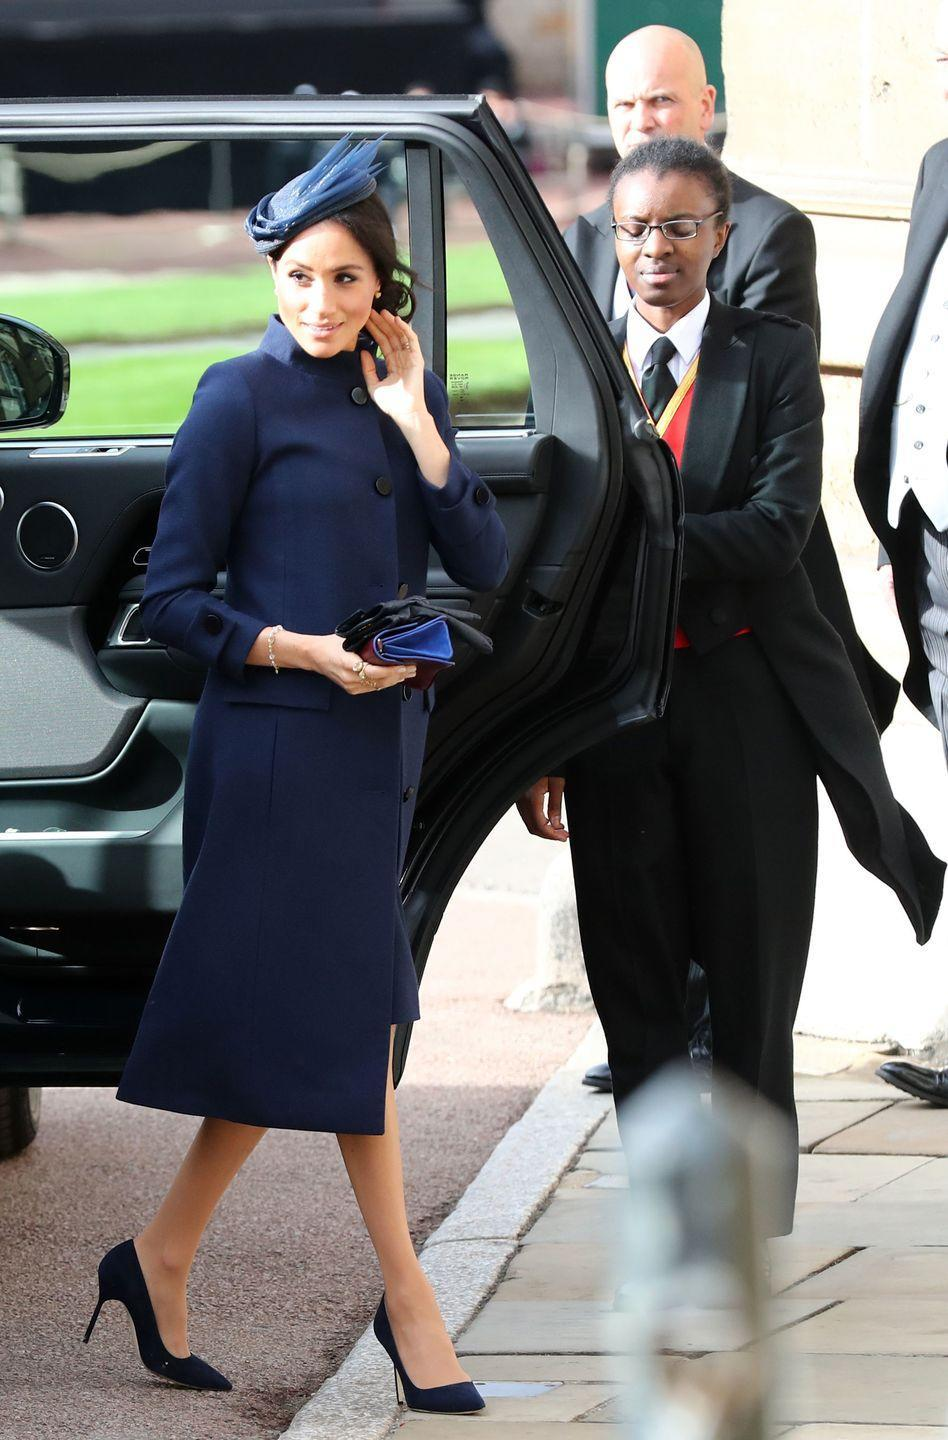 """<p><a href=""""https://www.townandcountrymag.com/society/tradition/a23552769/meghan-markle-givenchy-dress-princess-eugenie-wedding-photos/"""" rel=""""nofollow noopener"""" target=""""_blank"""" data-ylk=""""slk:Meghan Markle"""" class=""""link rapid-noclick-resp"""">Meghan Markle</a> wore a sleek navy blue dress and coat designed by Givenchy while attending Princess Eugenie's wedding. She finished her look with matching heels and a fascinator by Noel Stewart.</p>"""